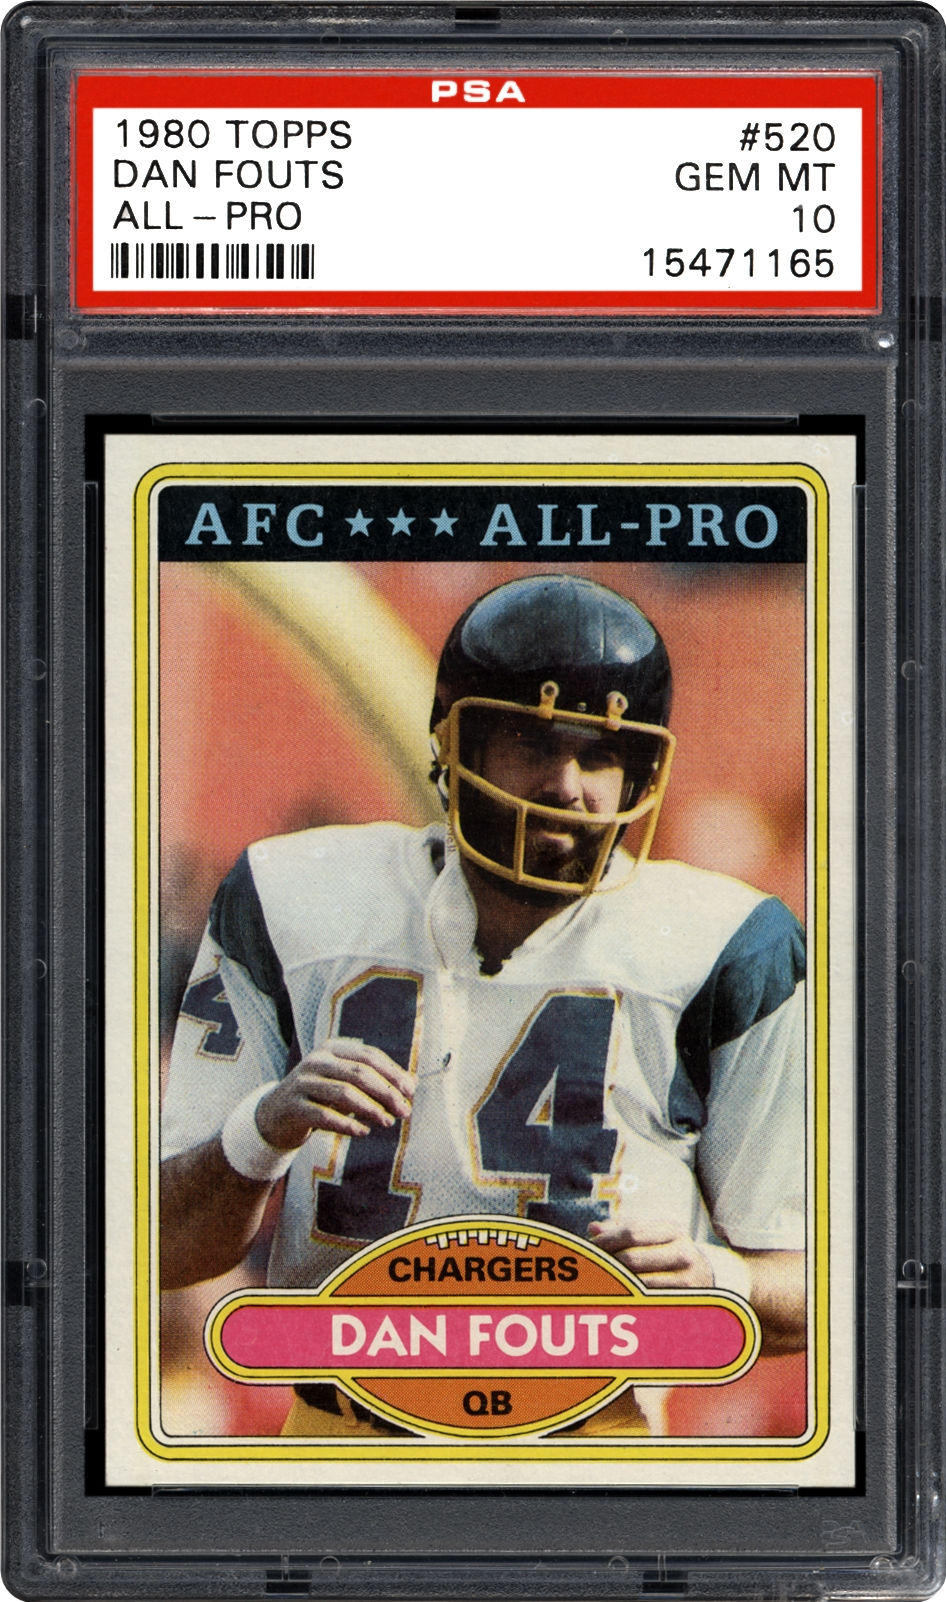 1980 Topps Dan Fouts All Pro Psa Cardfacts